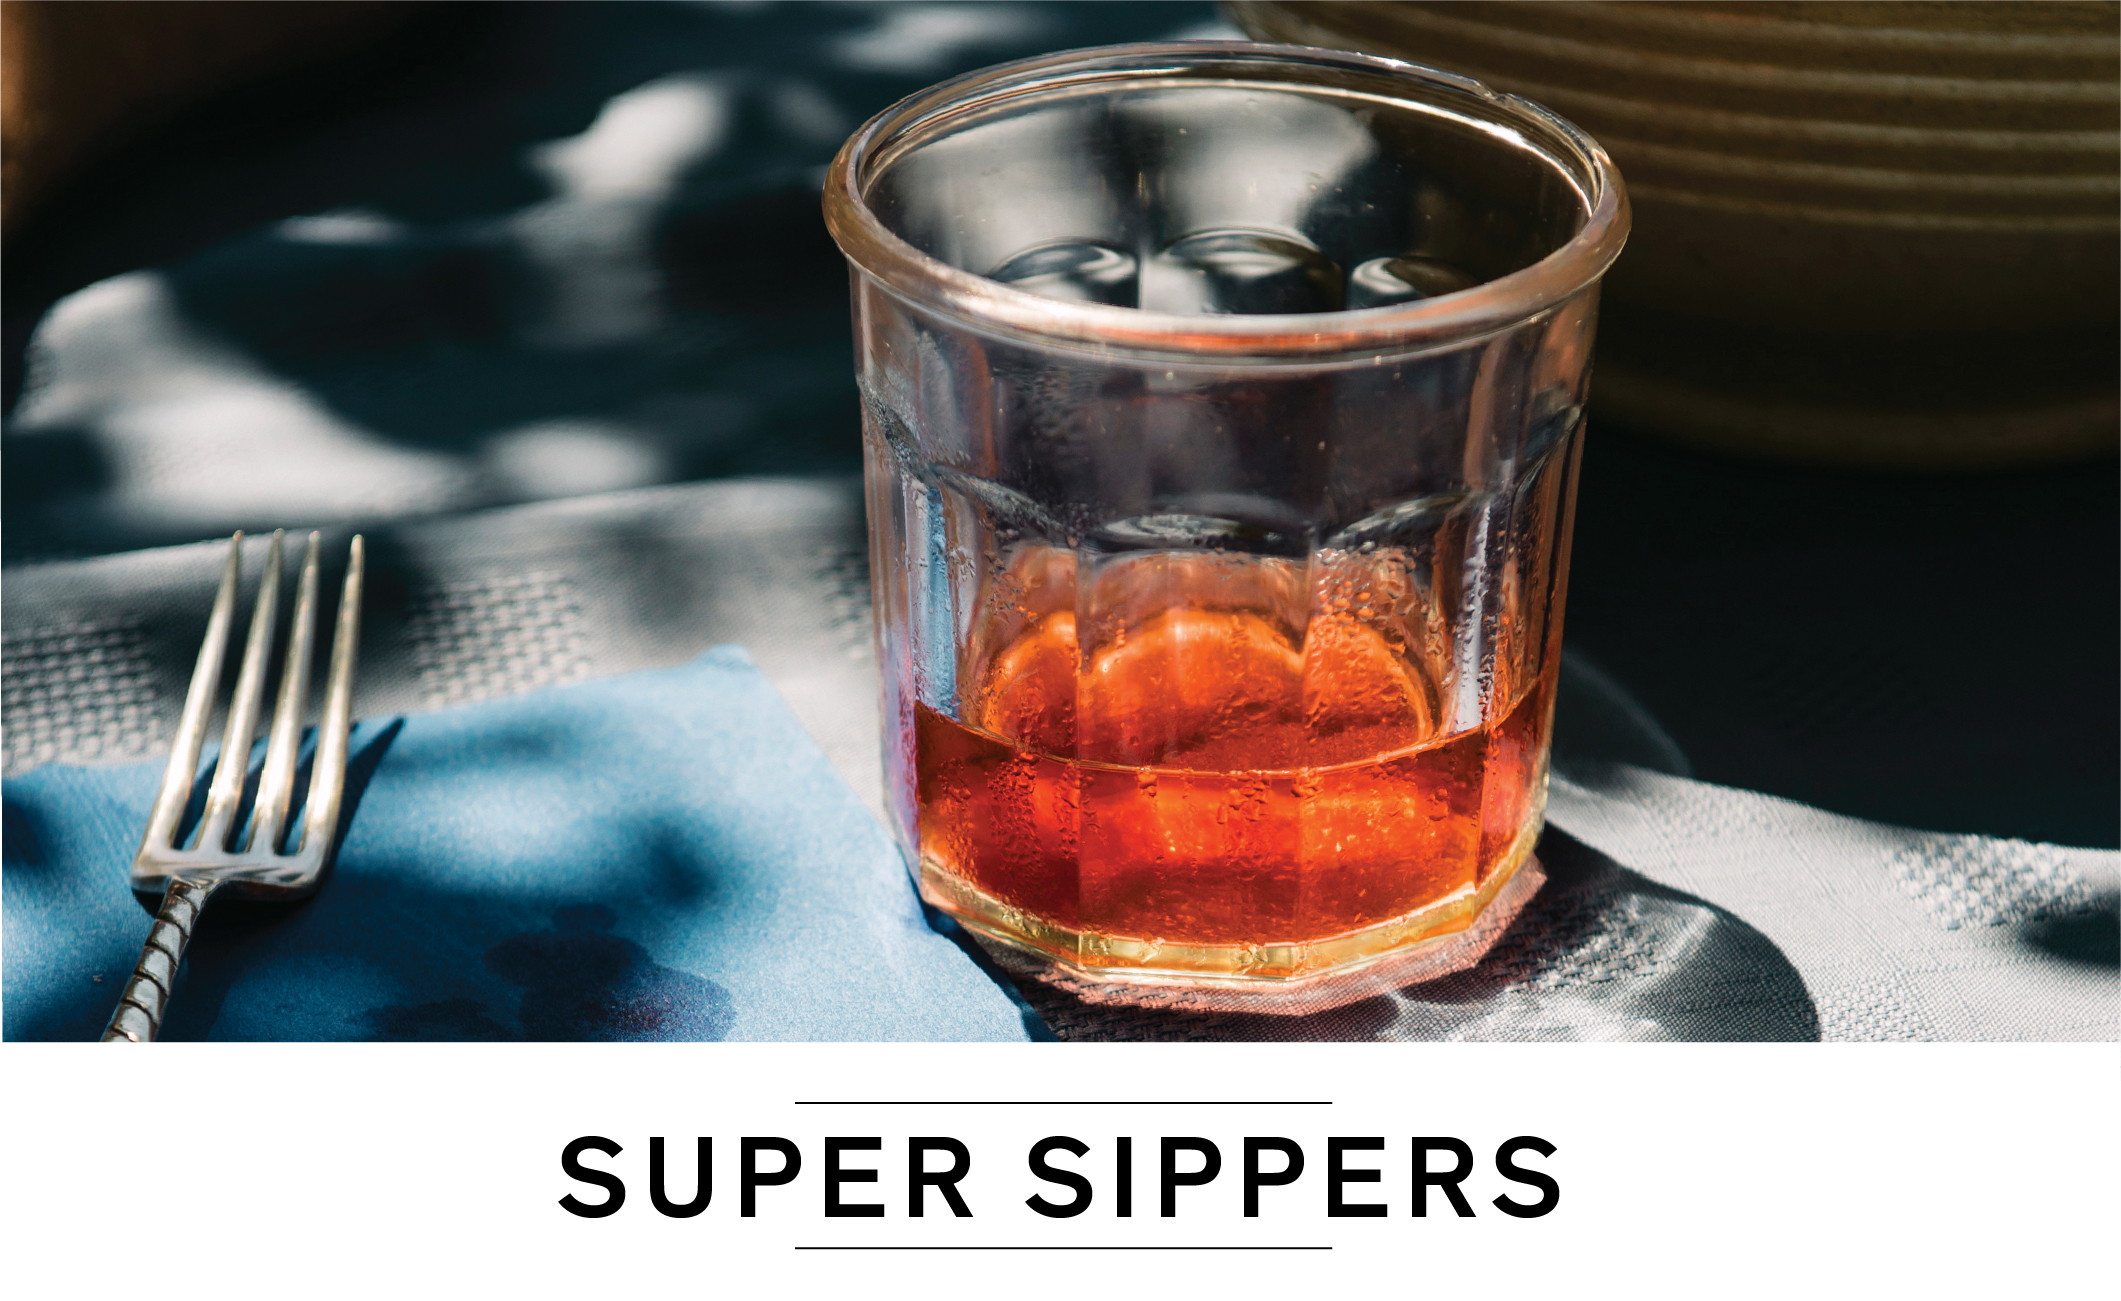 Super Sippers